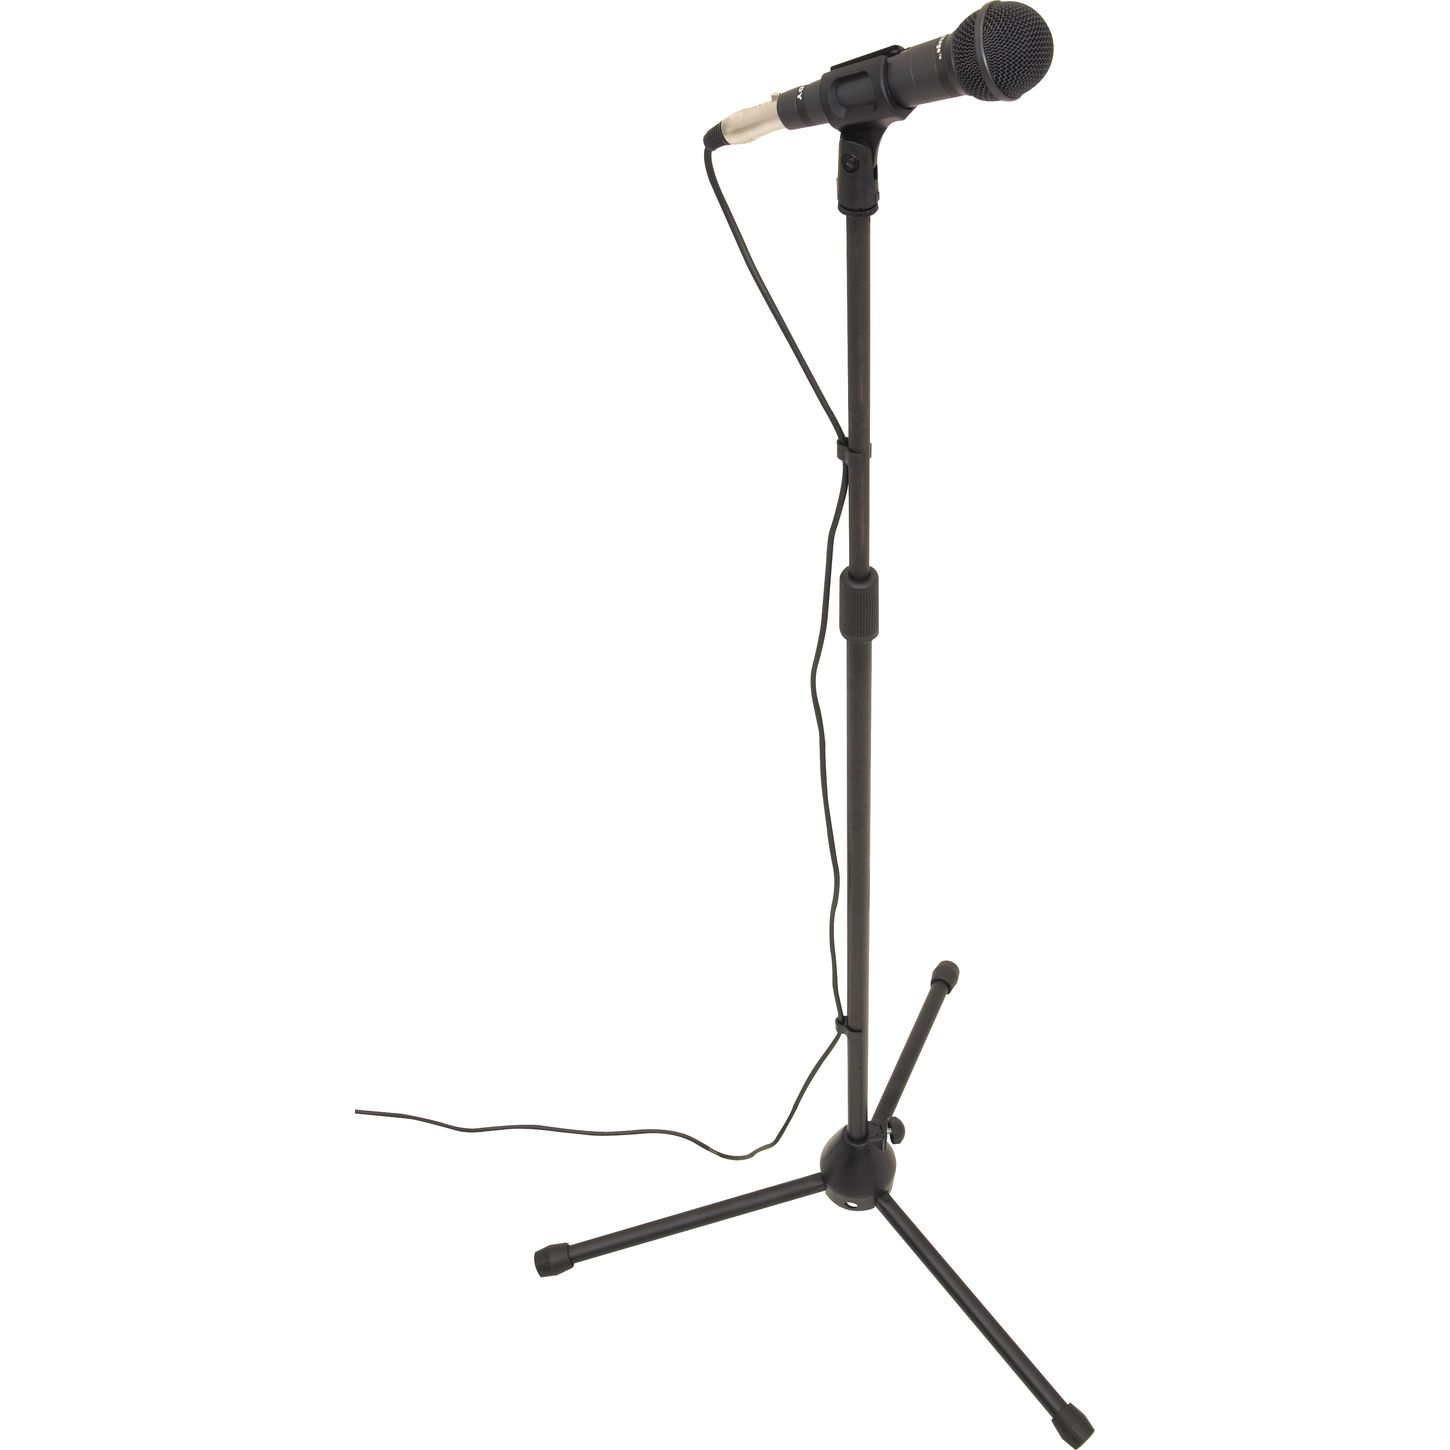 Vintage Microphone Stand Clip Art Clipart Panda Free